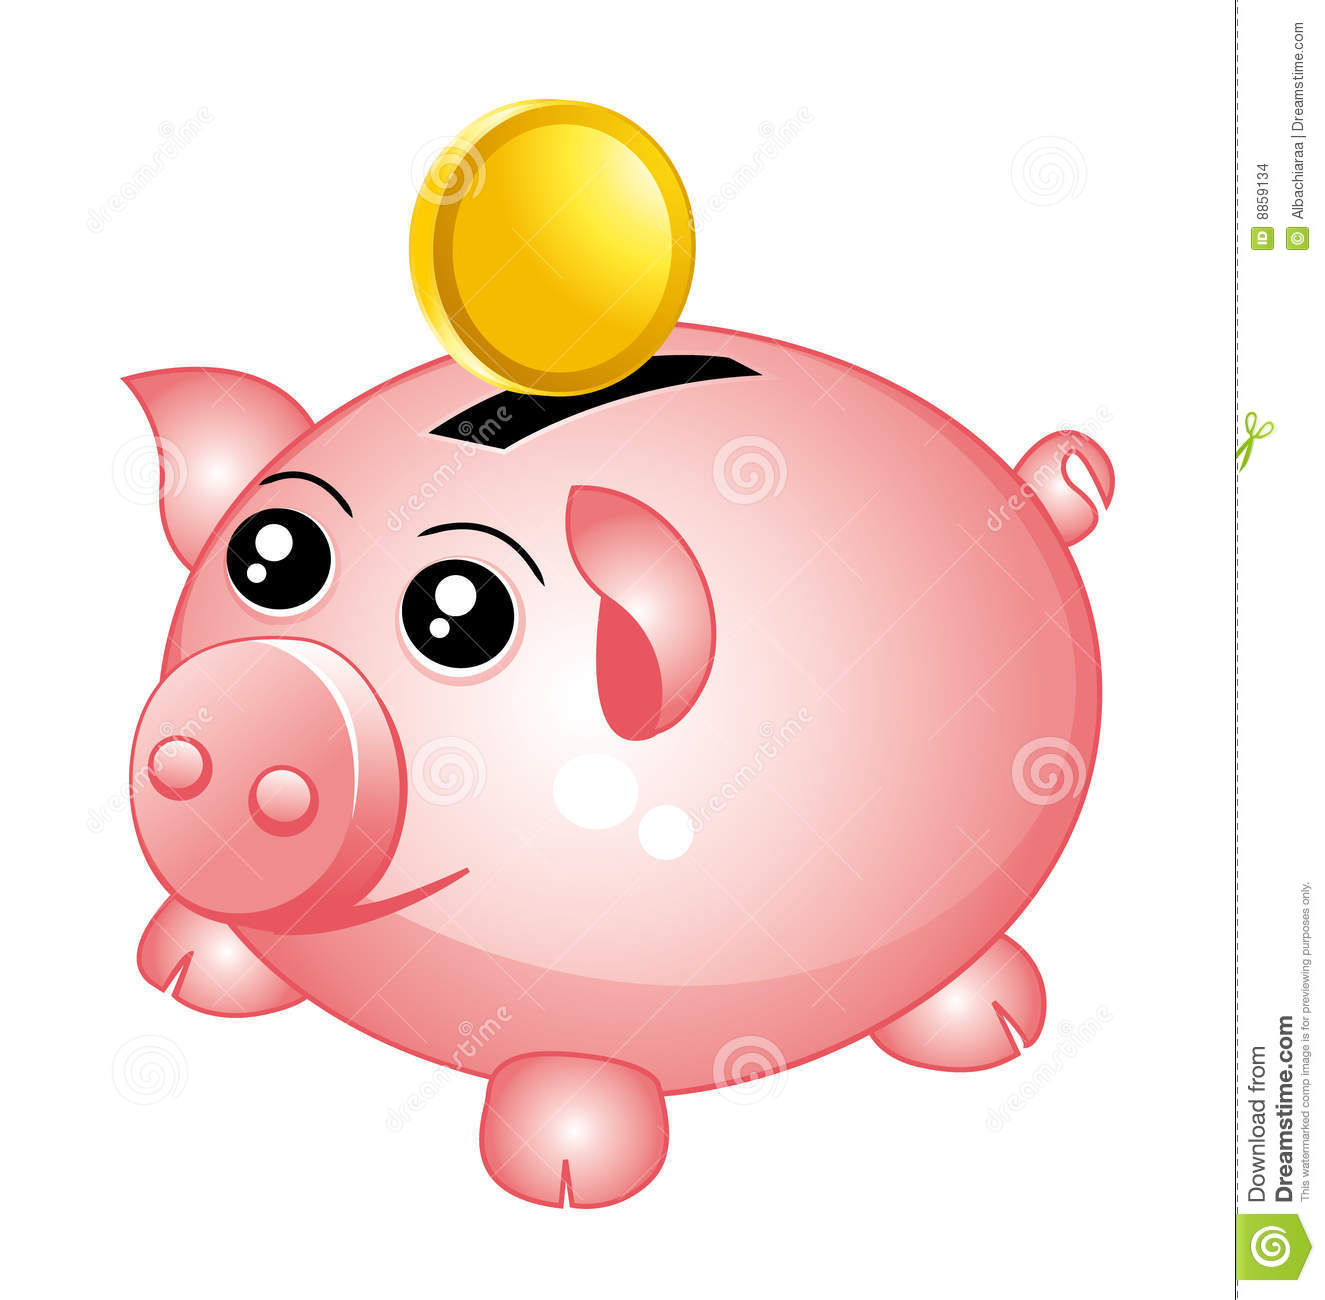 Animated piggy bank clipart. With coin